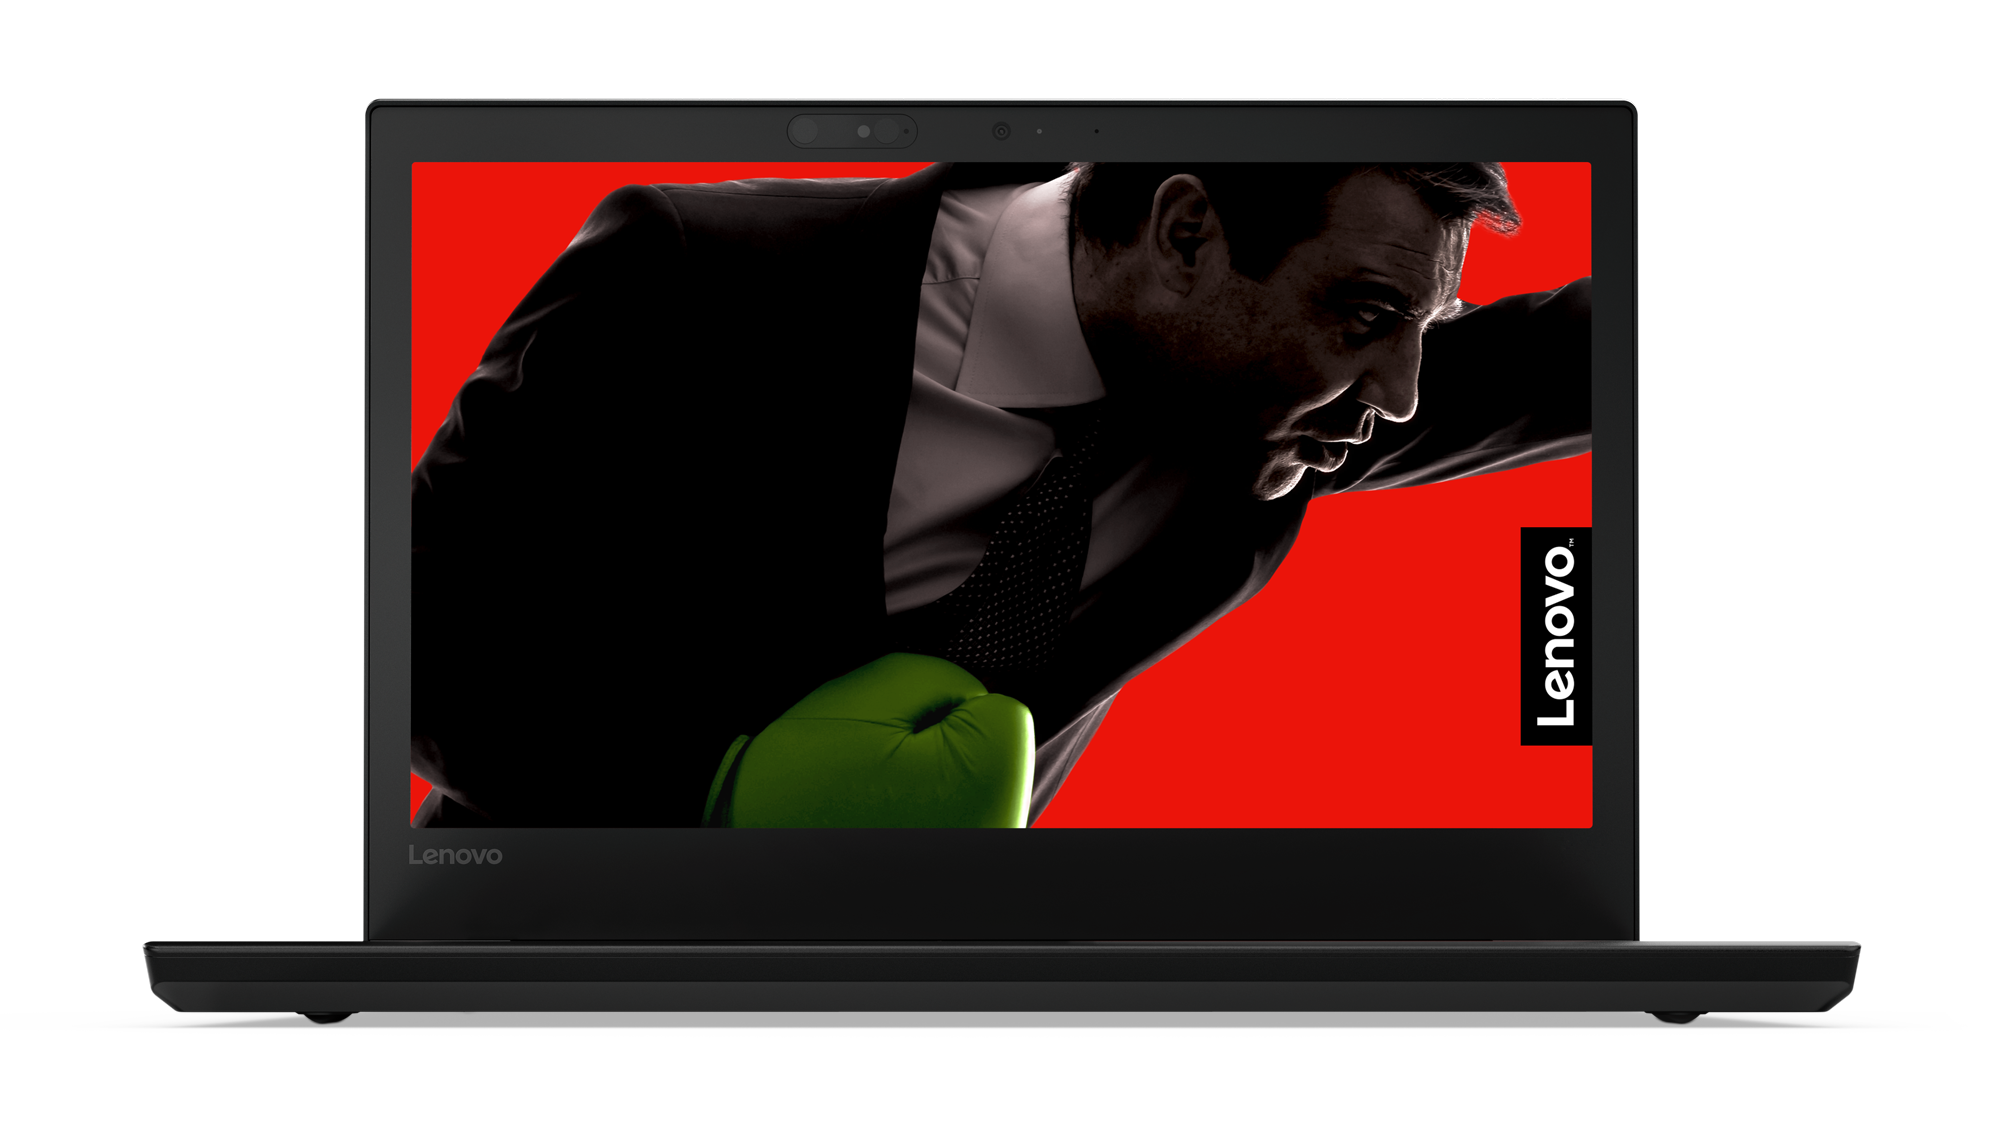 Lenovo ThinkPad Anniversary Edition 25 laptop launched at $1899